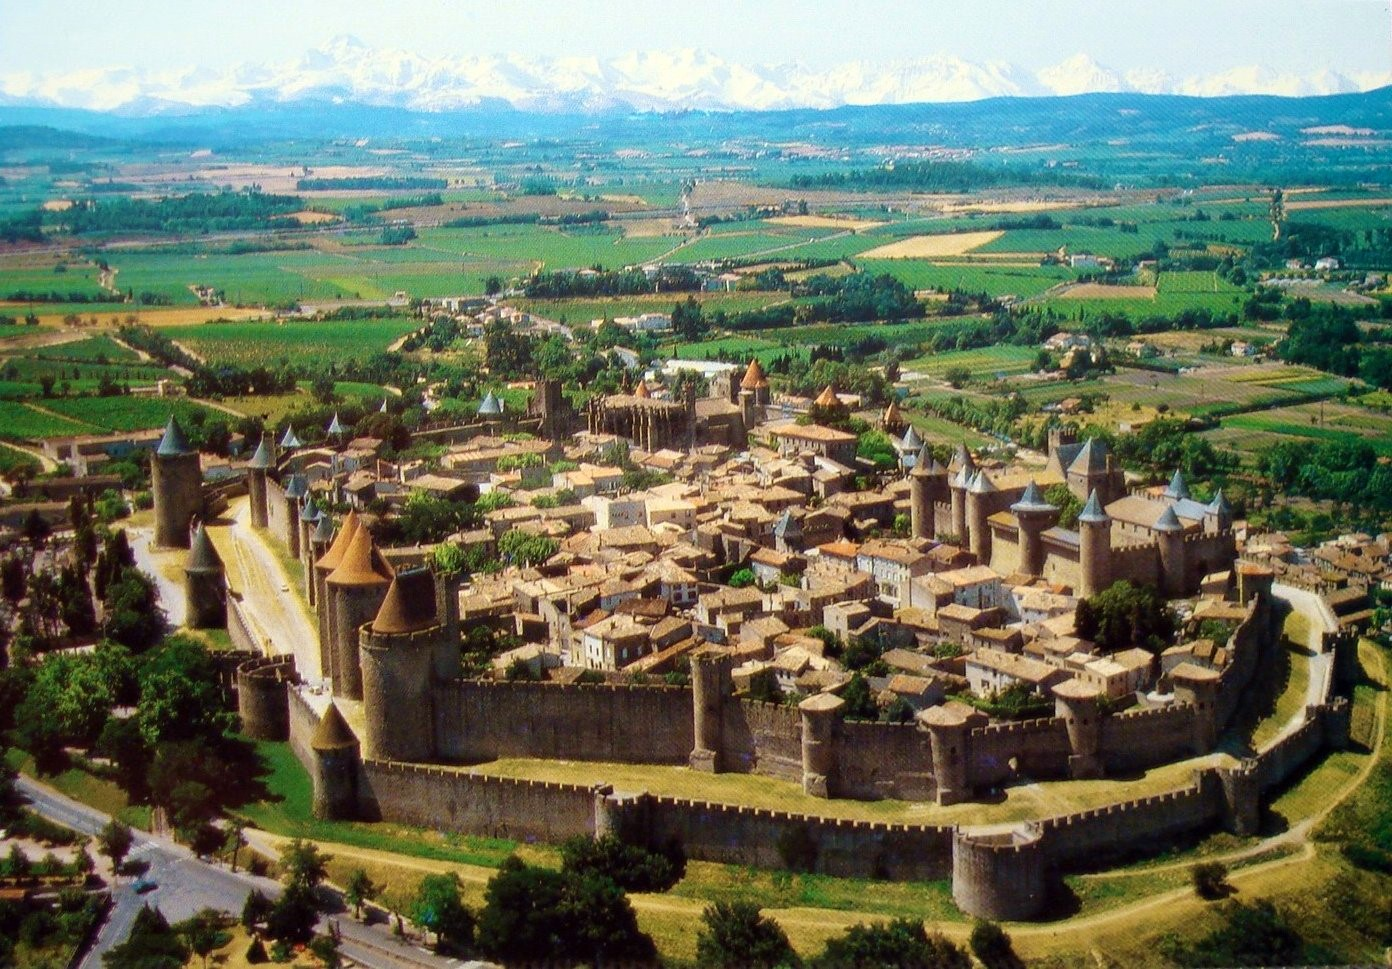 Cité de Carcassonne. Photo erjk.amerjka